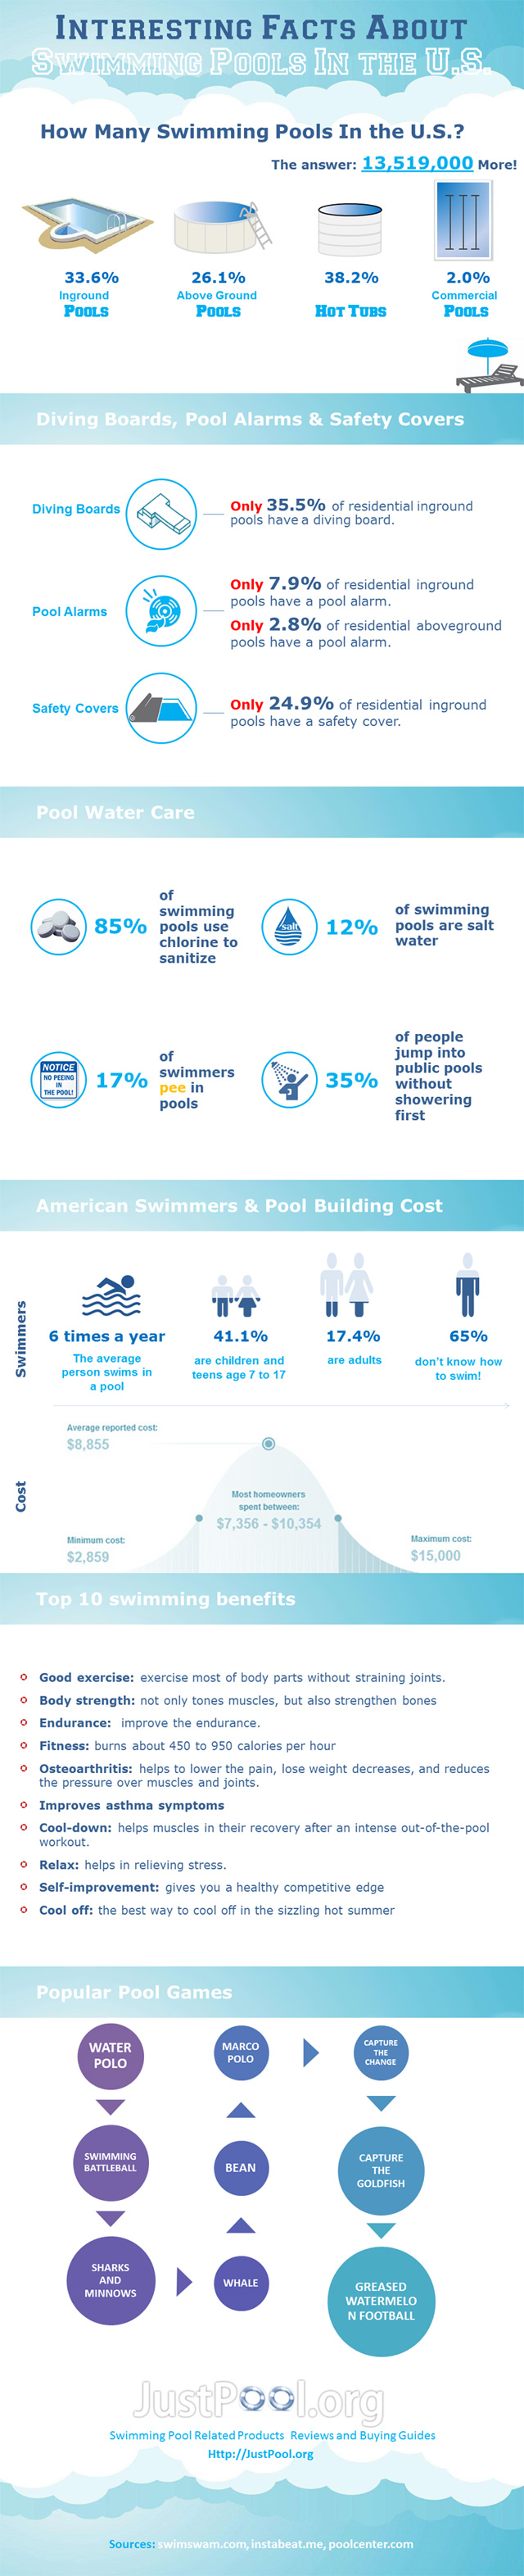 Interesting Facts About Swimming Pools In the U.S.